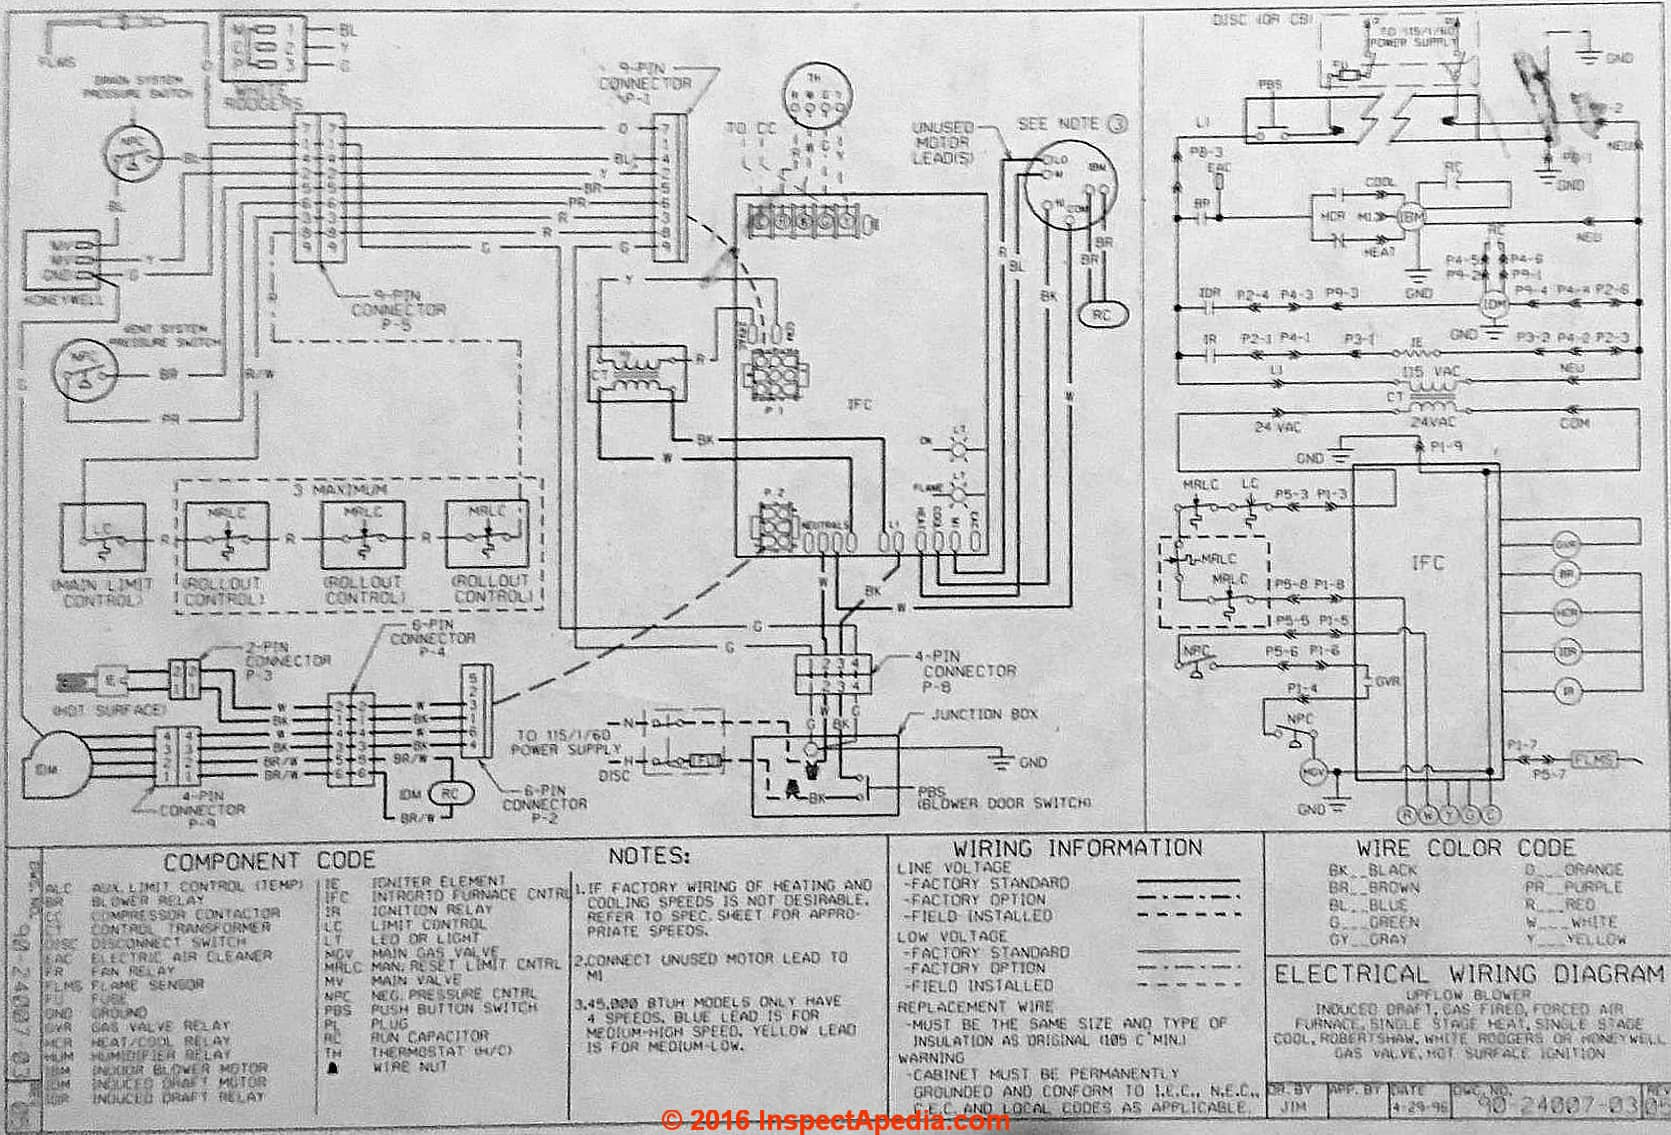 Rheem_AHU_Wiring_Diagram_IAP air conditioner heat pump faqs rheem manuals wiring diagrams at mifinder.co